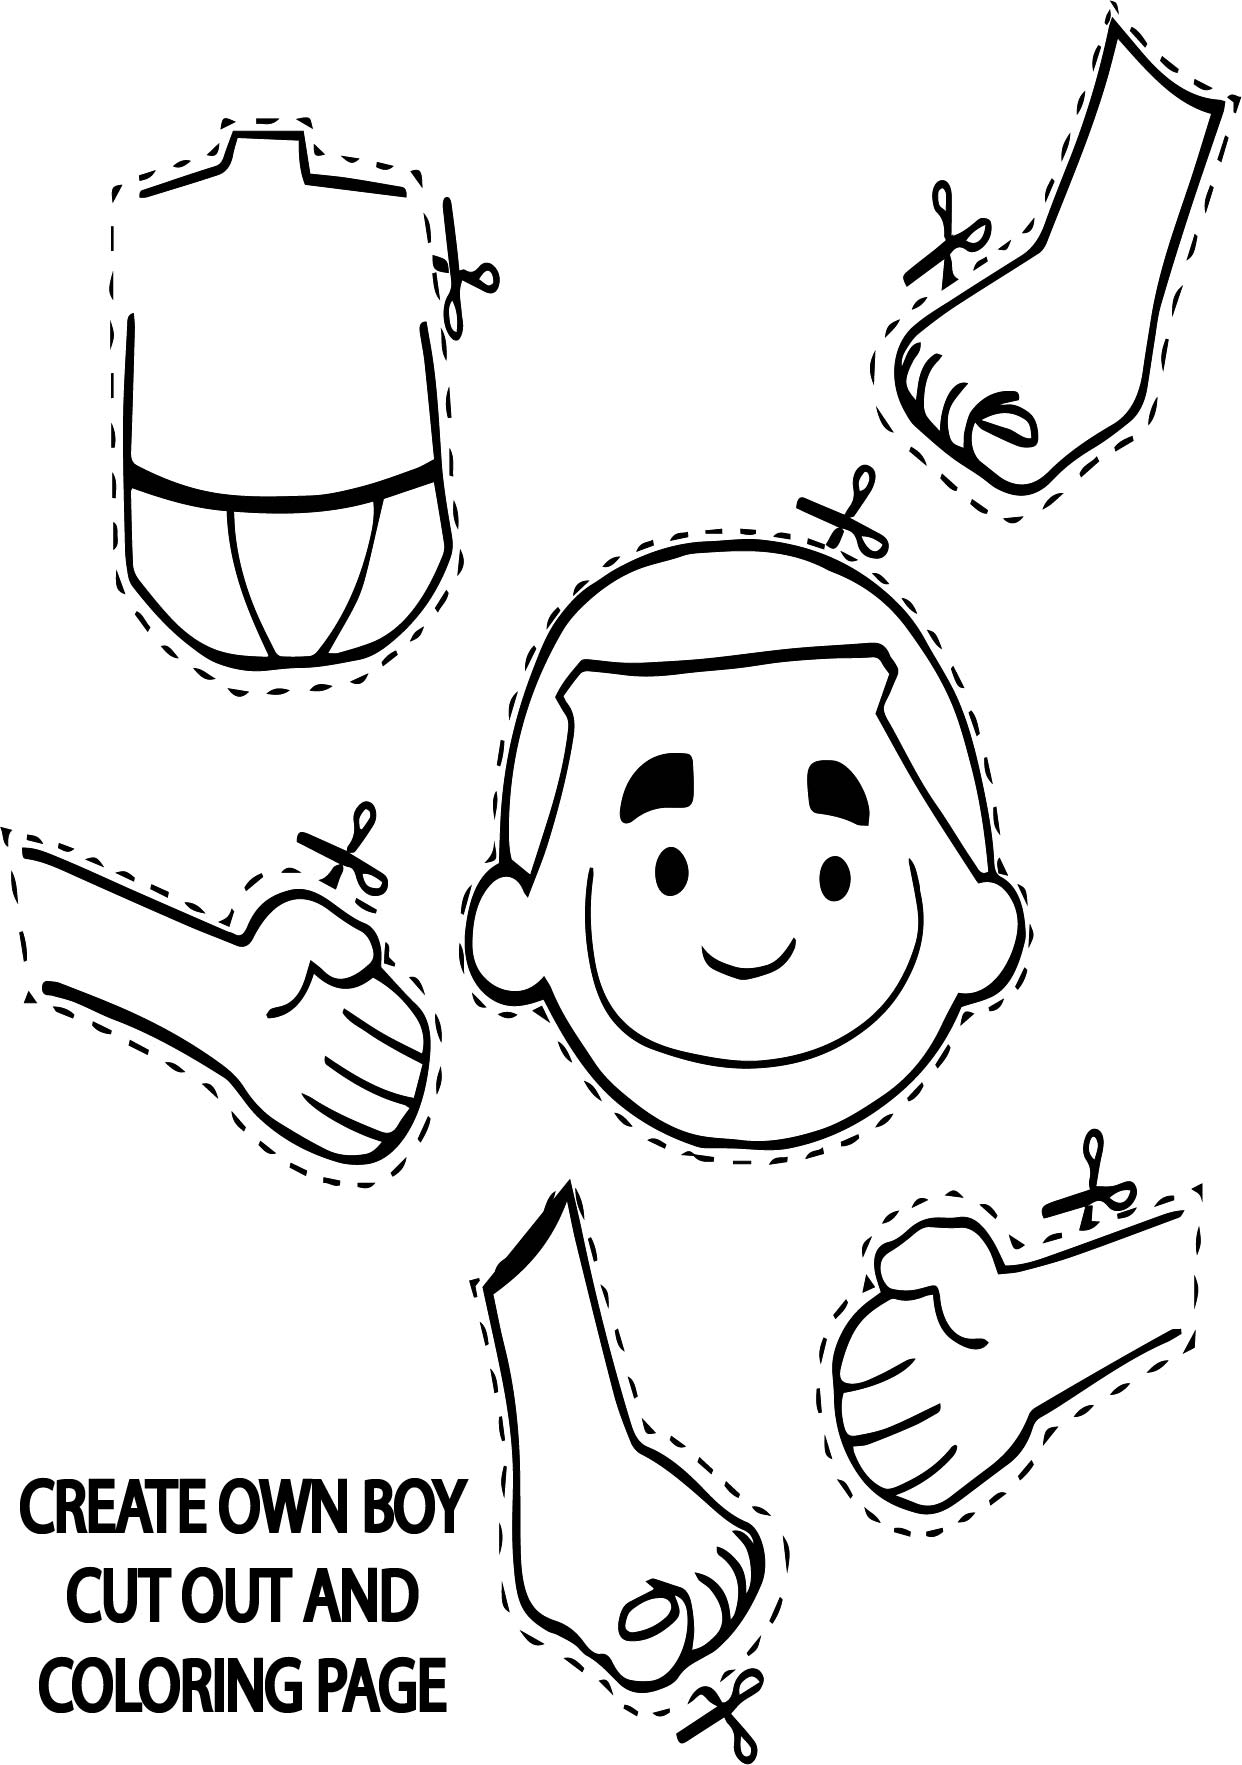 Create own boy cut out coloring page for How to make a coloring book page in photoshop